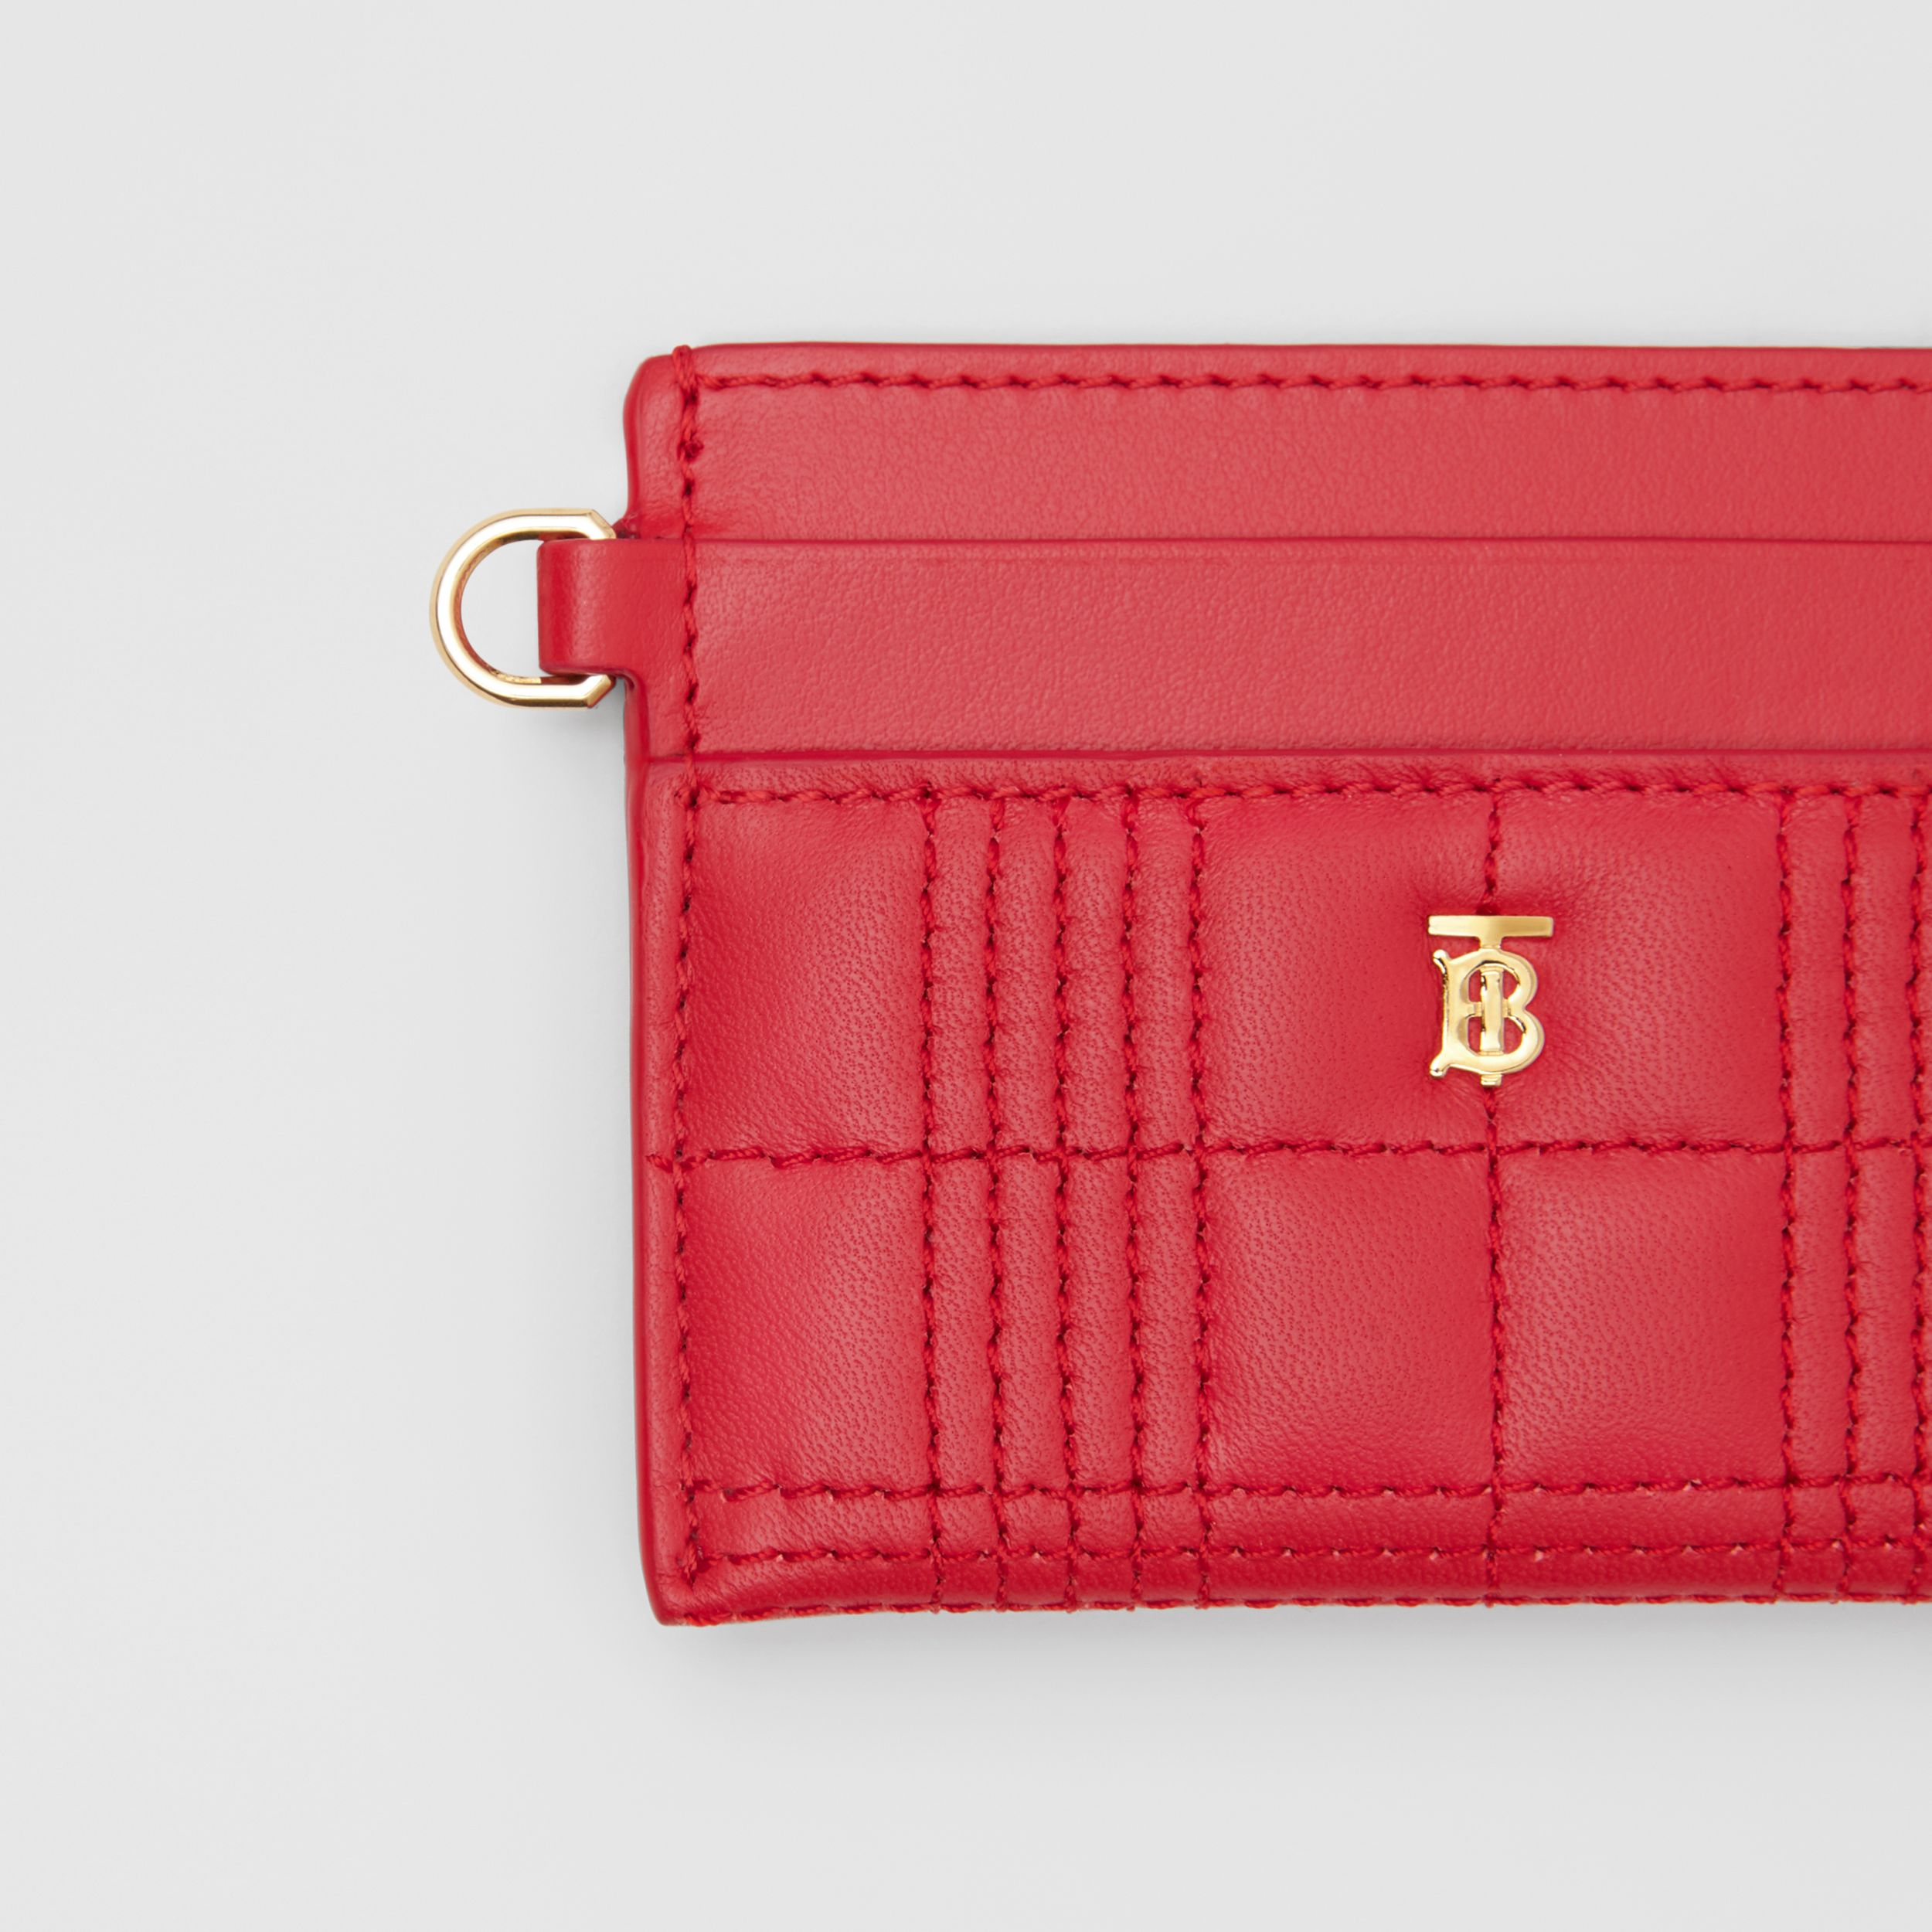 Monogram Motif Quilted Lambskin Card Case in Bright Red - Women | Burberry - 2